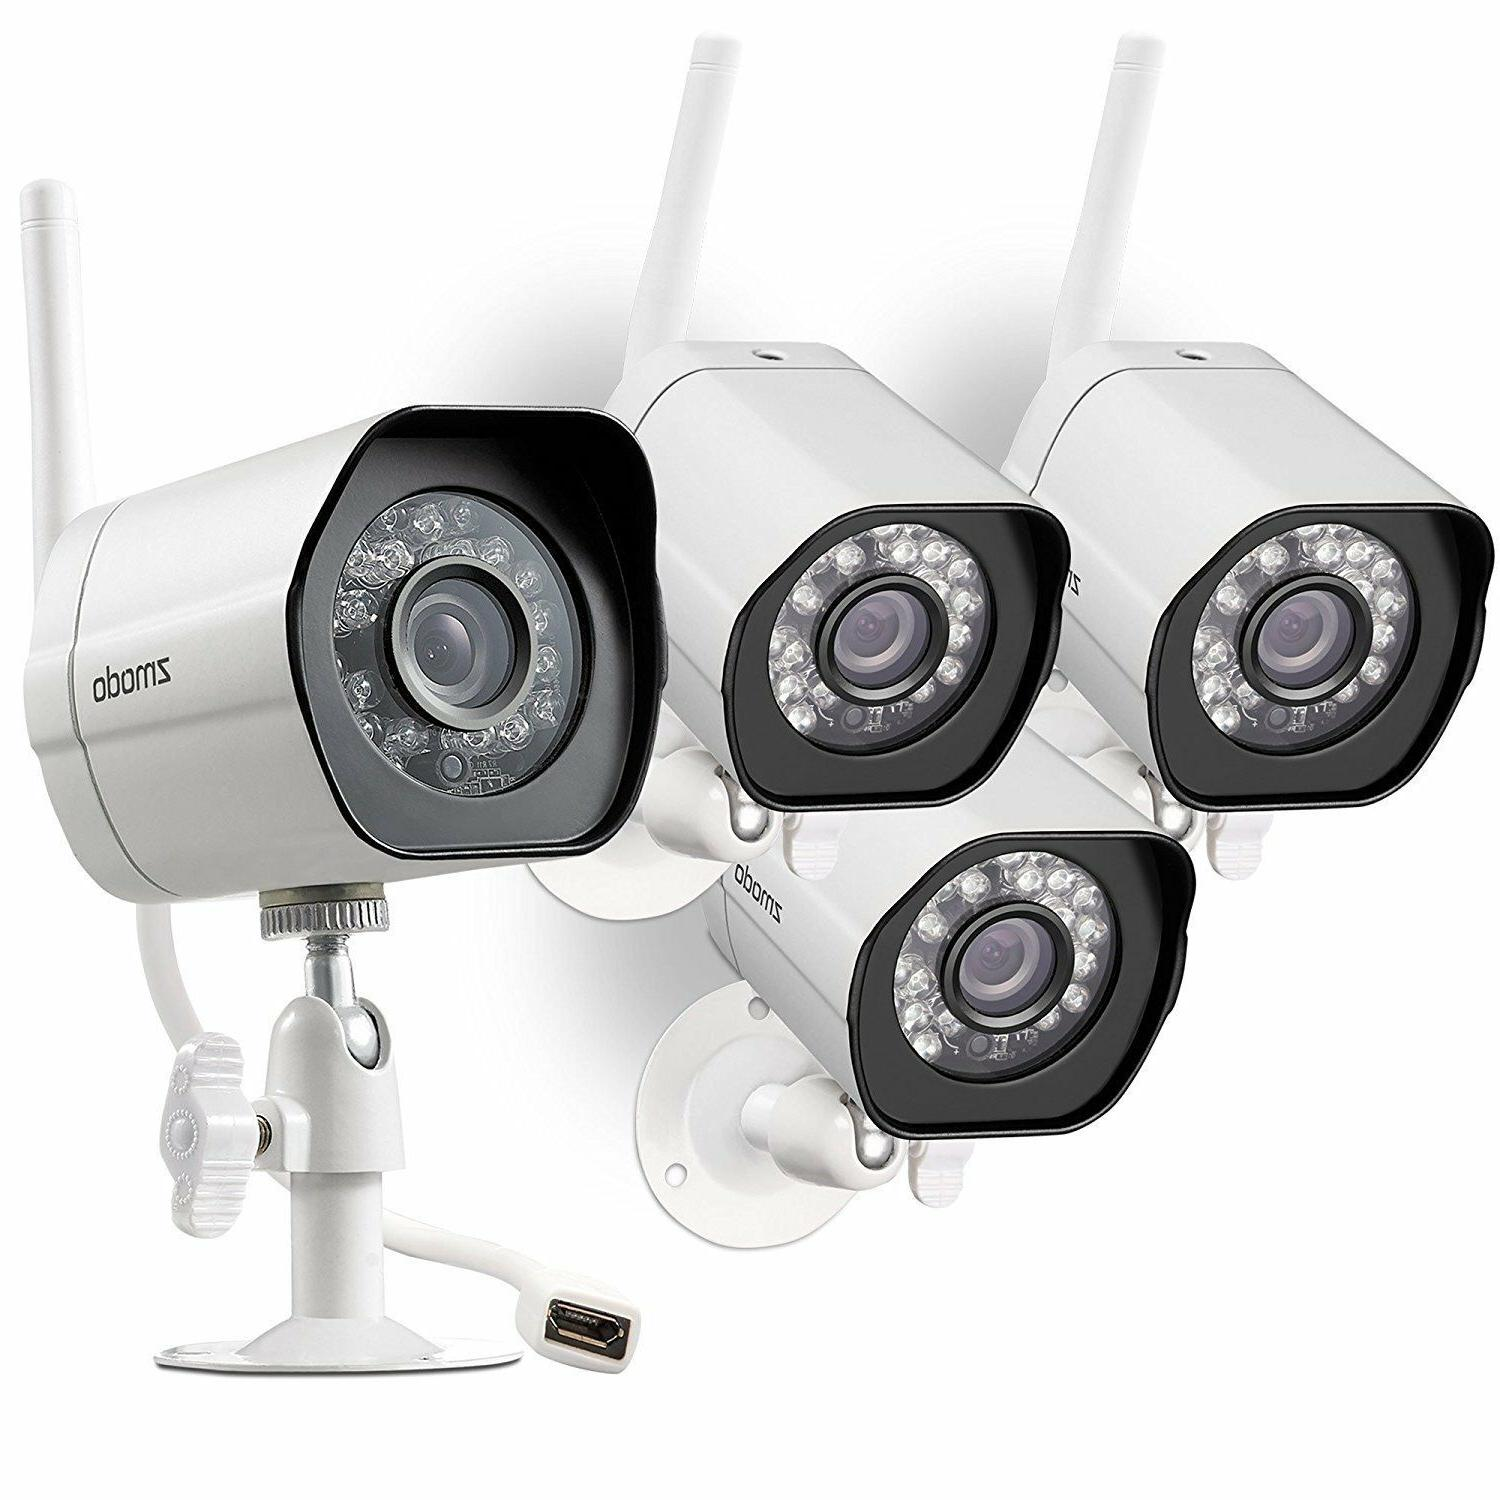 Zmodo 720P Samrt IP Outdoor Network Security Camera w/ Night Vision Clearance